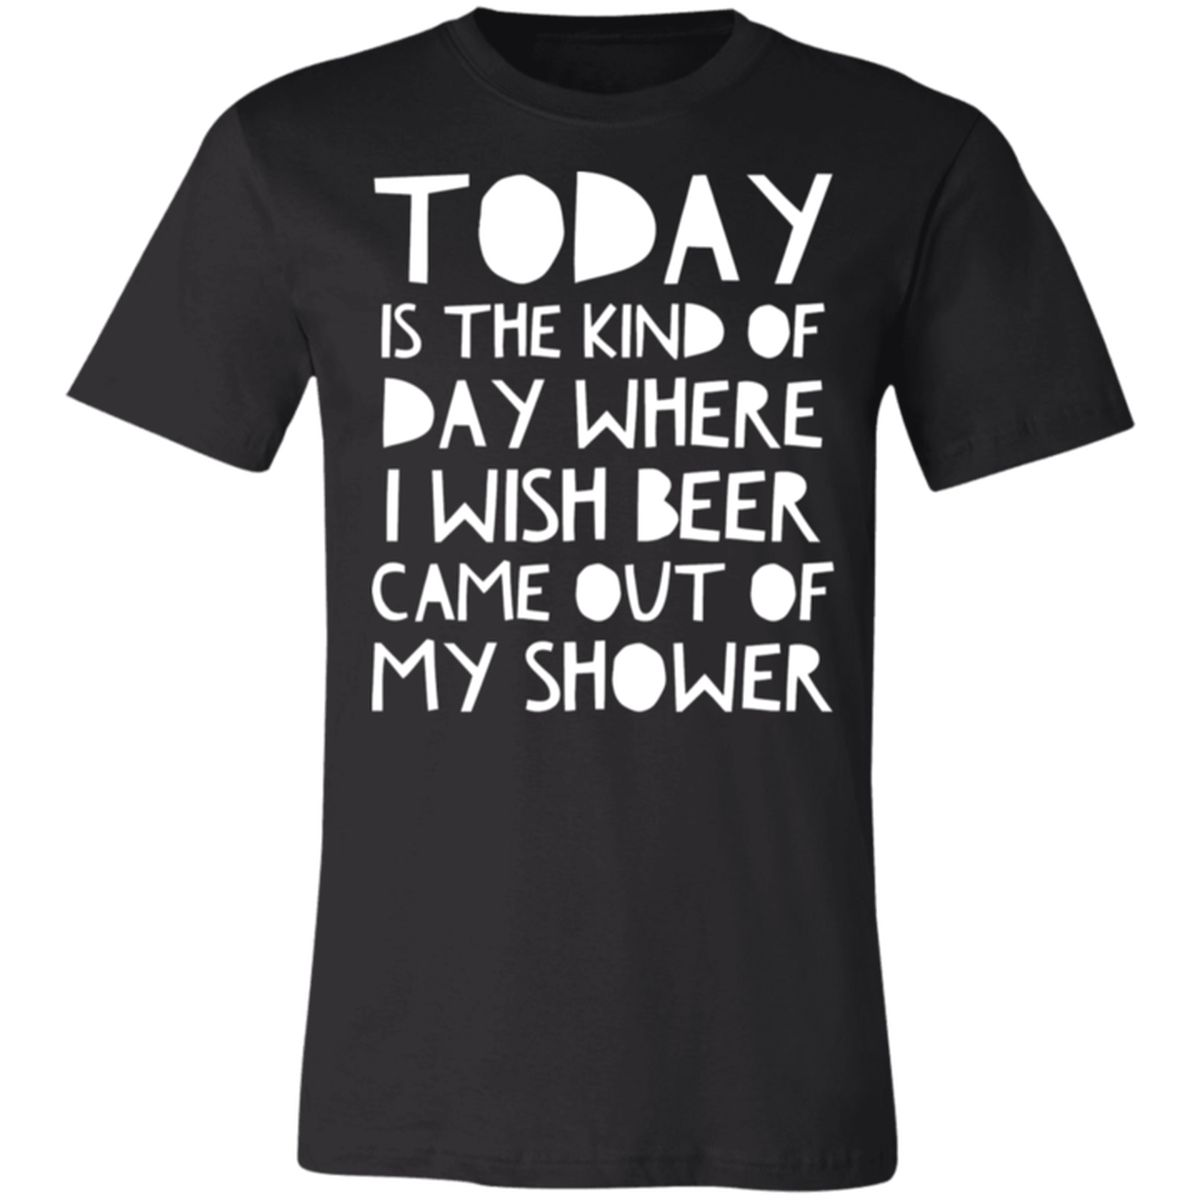 I Wish Beer Came Out Of My Shower Shirt, Hoodie, Sweatshirt